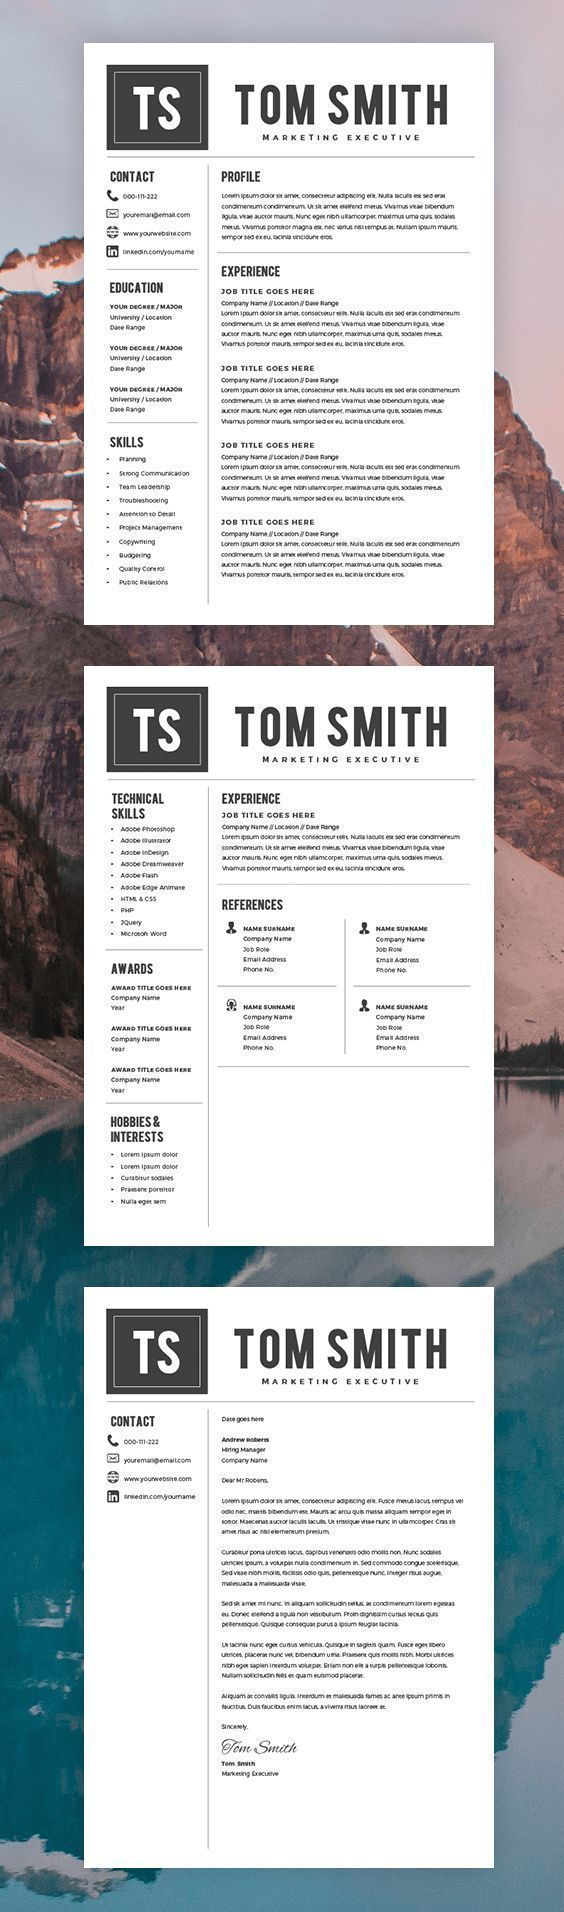 Word Cv Templates 2007%0A Modern Resume Template  Free Cover Letter  CV Template  MS Word on Mac